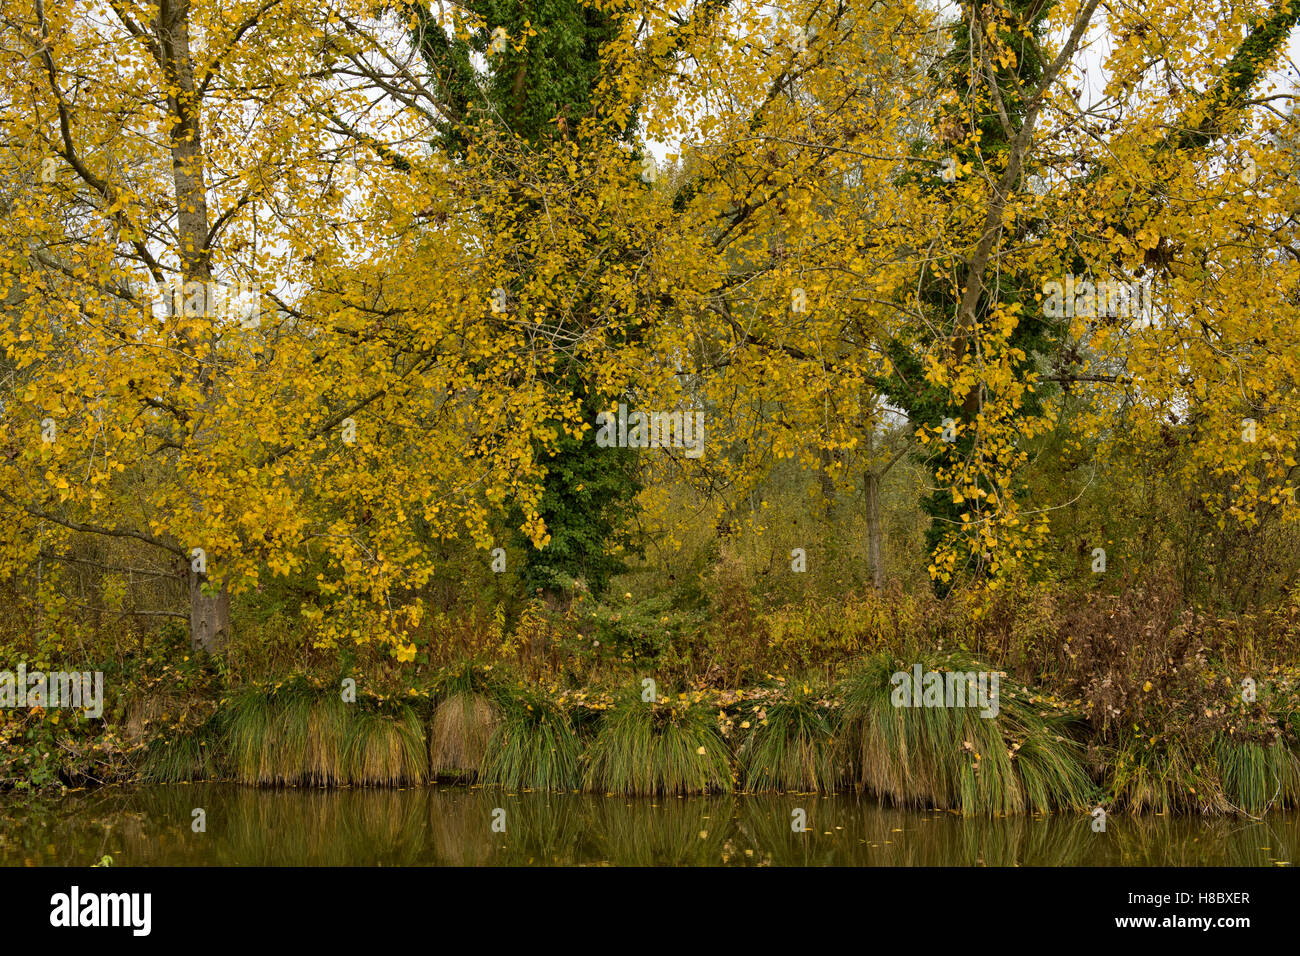 Black sedge tussocks along the bank of the Kennet & Avon Canal with poplar trees in autumn colour - Stock Image